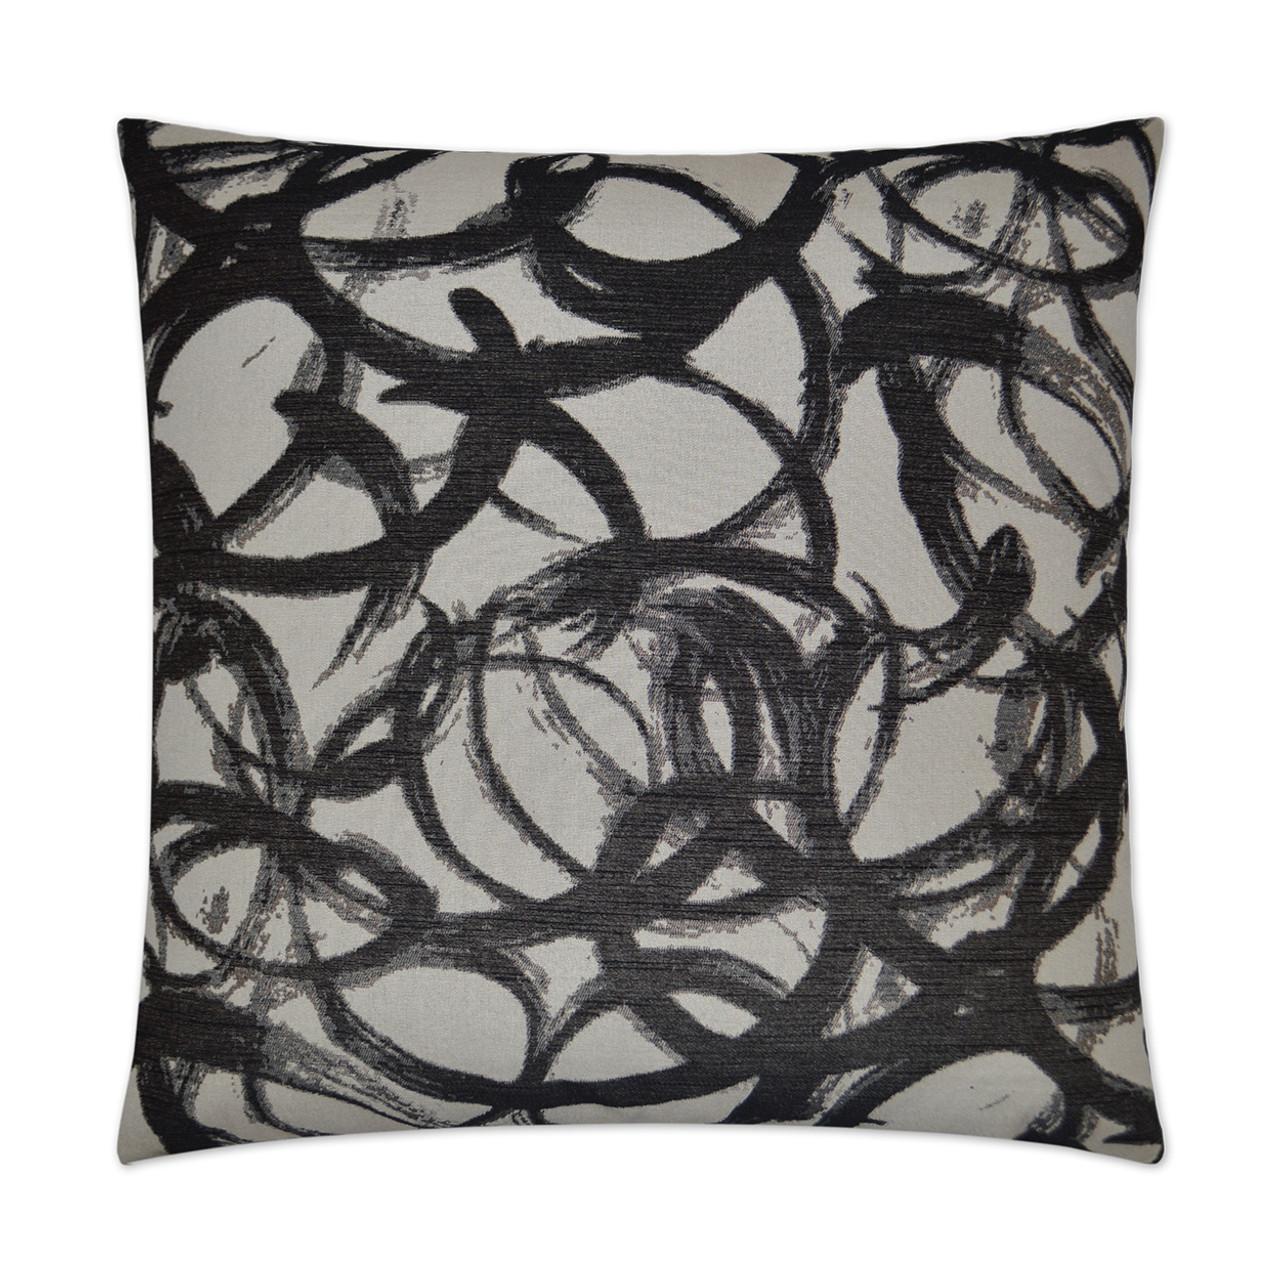 Swoosh Black and White Throw Pillow